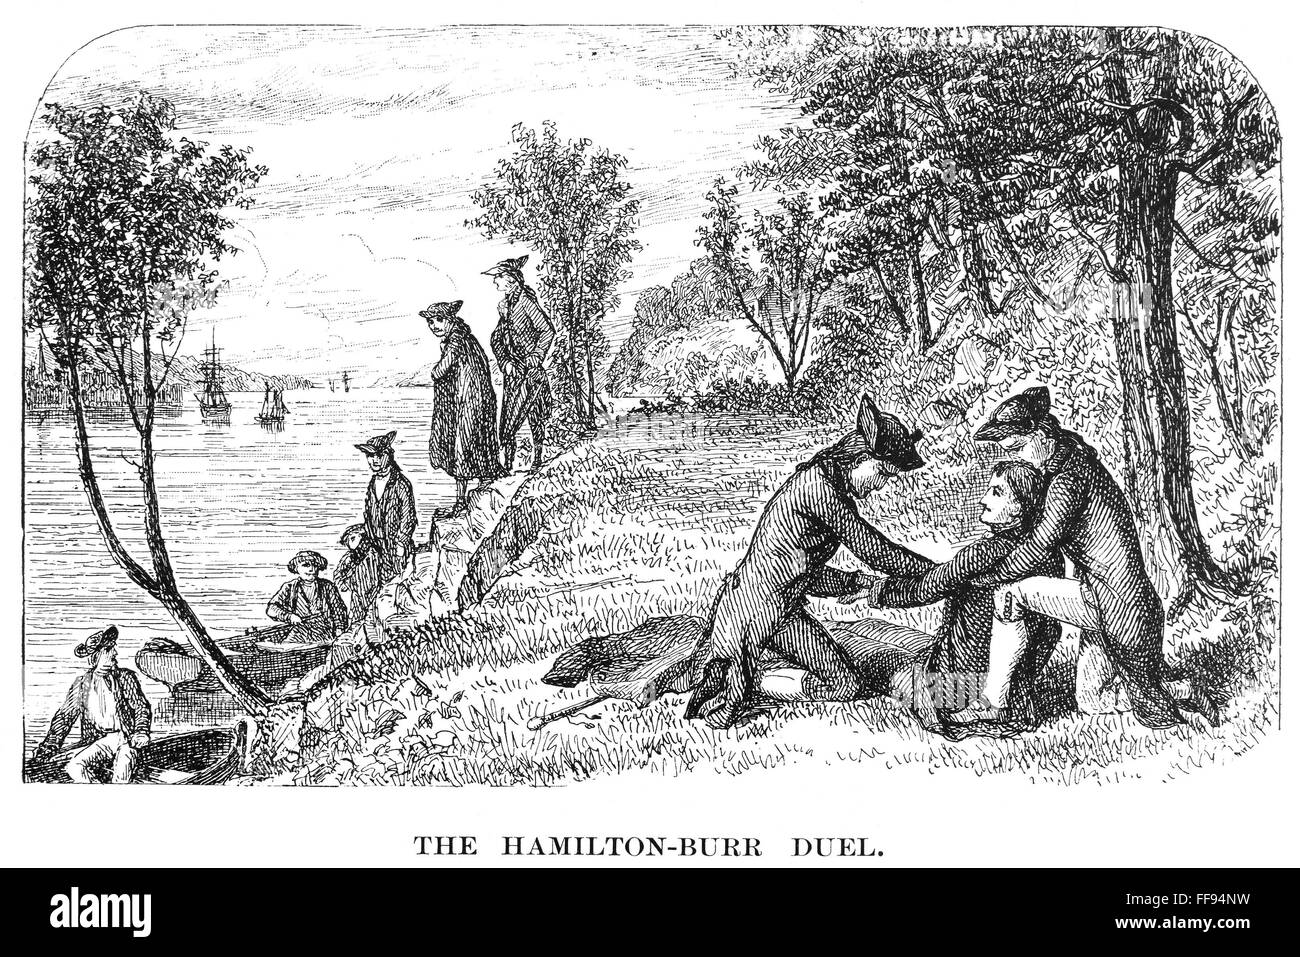 the consequences of the burr and hamiton This work was published before january 1, 1923, and is in the public domain worldwide because the author died at least 100 years ago n york 18 june 1804 sir, i send for your perusal a letter signed ch d cooper which, though apparently published some time ago.